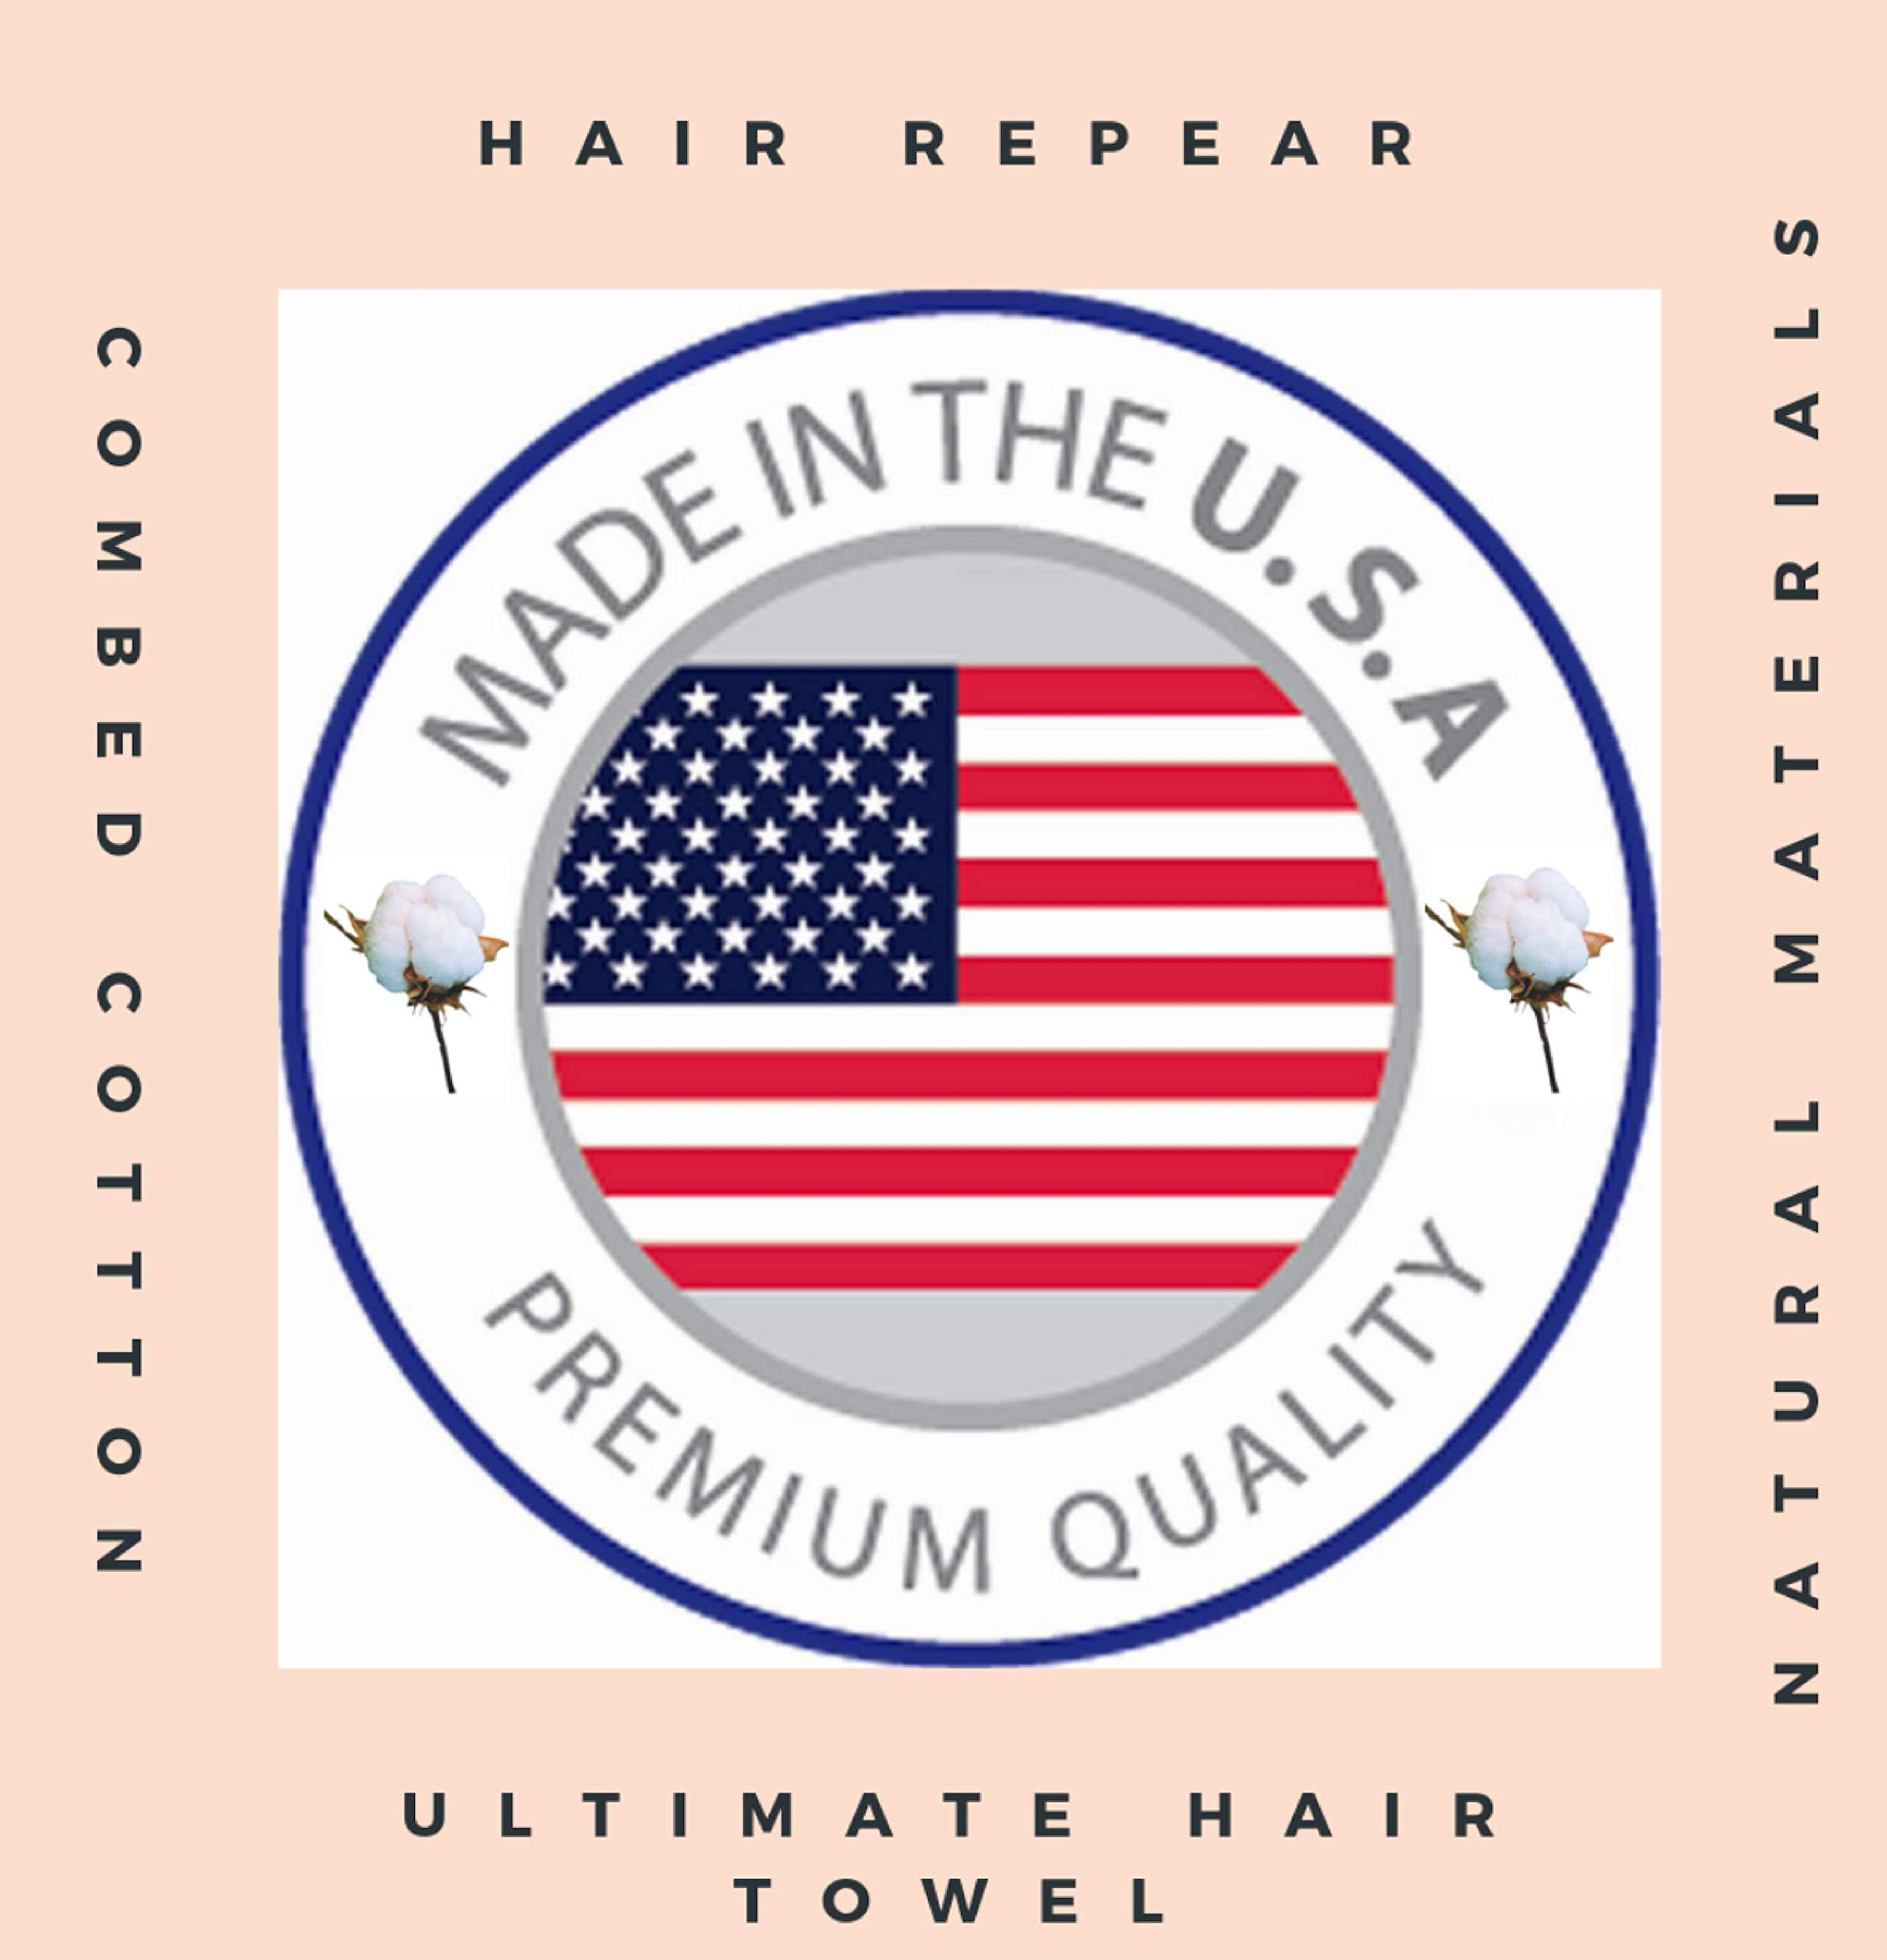 Hair RePear Ultimate Short Hair Towel-Embrace Your Straight Wavy Curly Hair with Our Premium Anti Frizz Absorbent Cotton Hair Styling Towel-Damage Free Product for Natural Hair - Small 19X39in (white) by Hair RePear